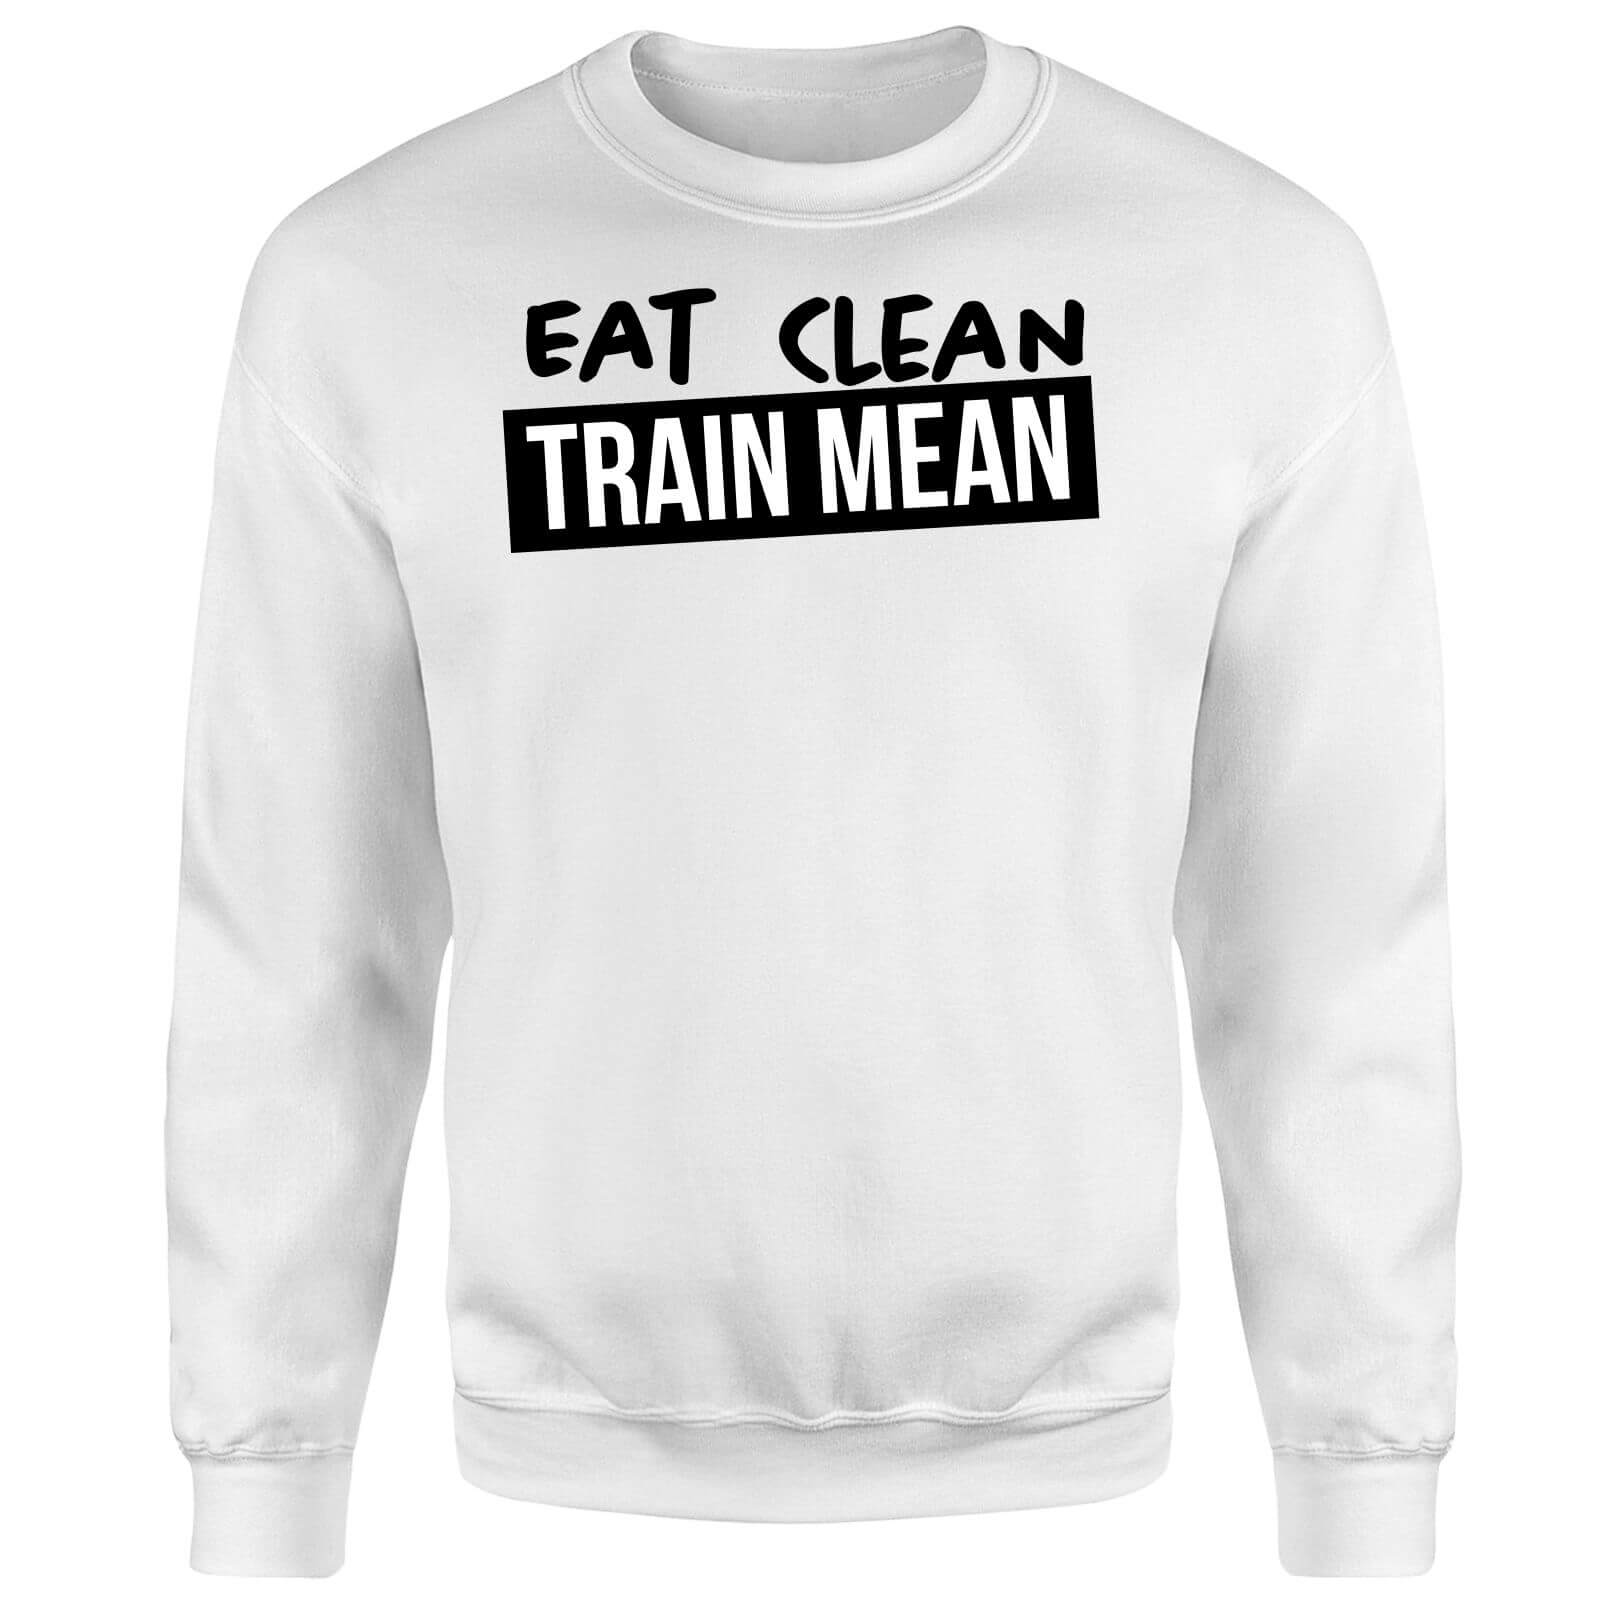 Eat Clean Train Mean Sweatshirt - White